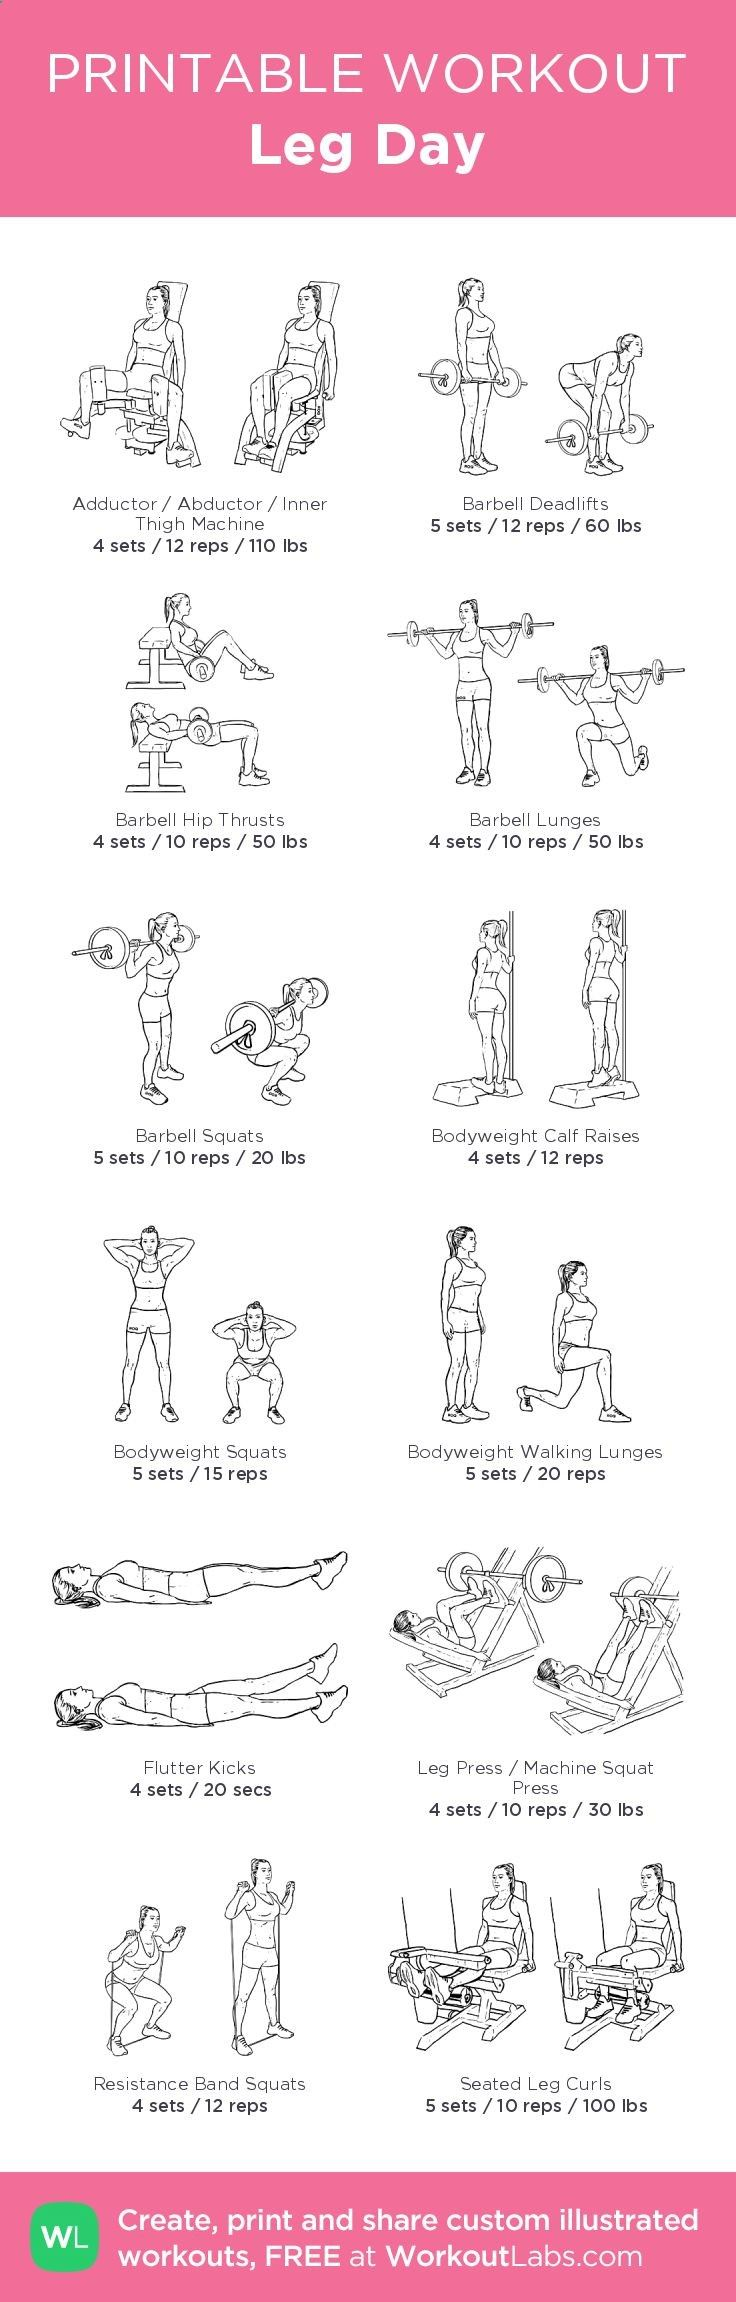 muscle gain workout routine pdf